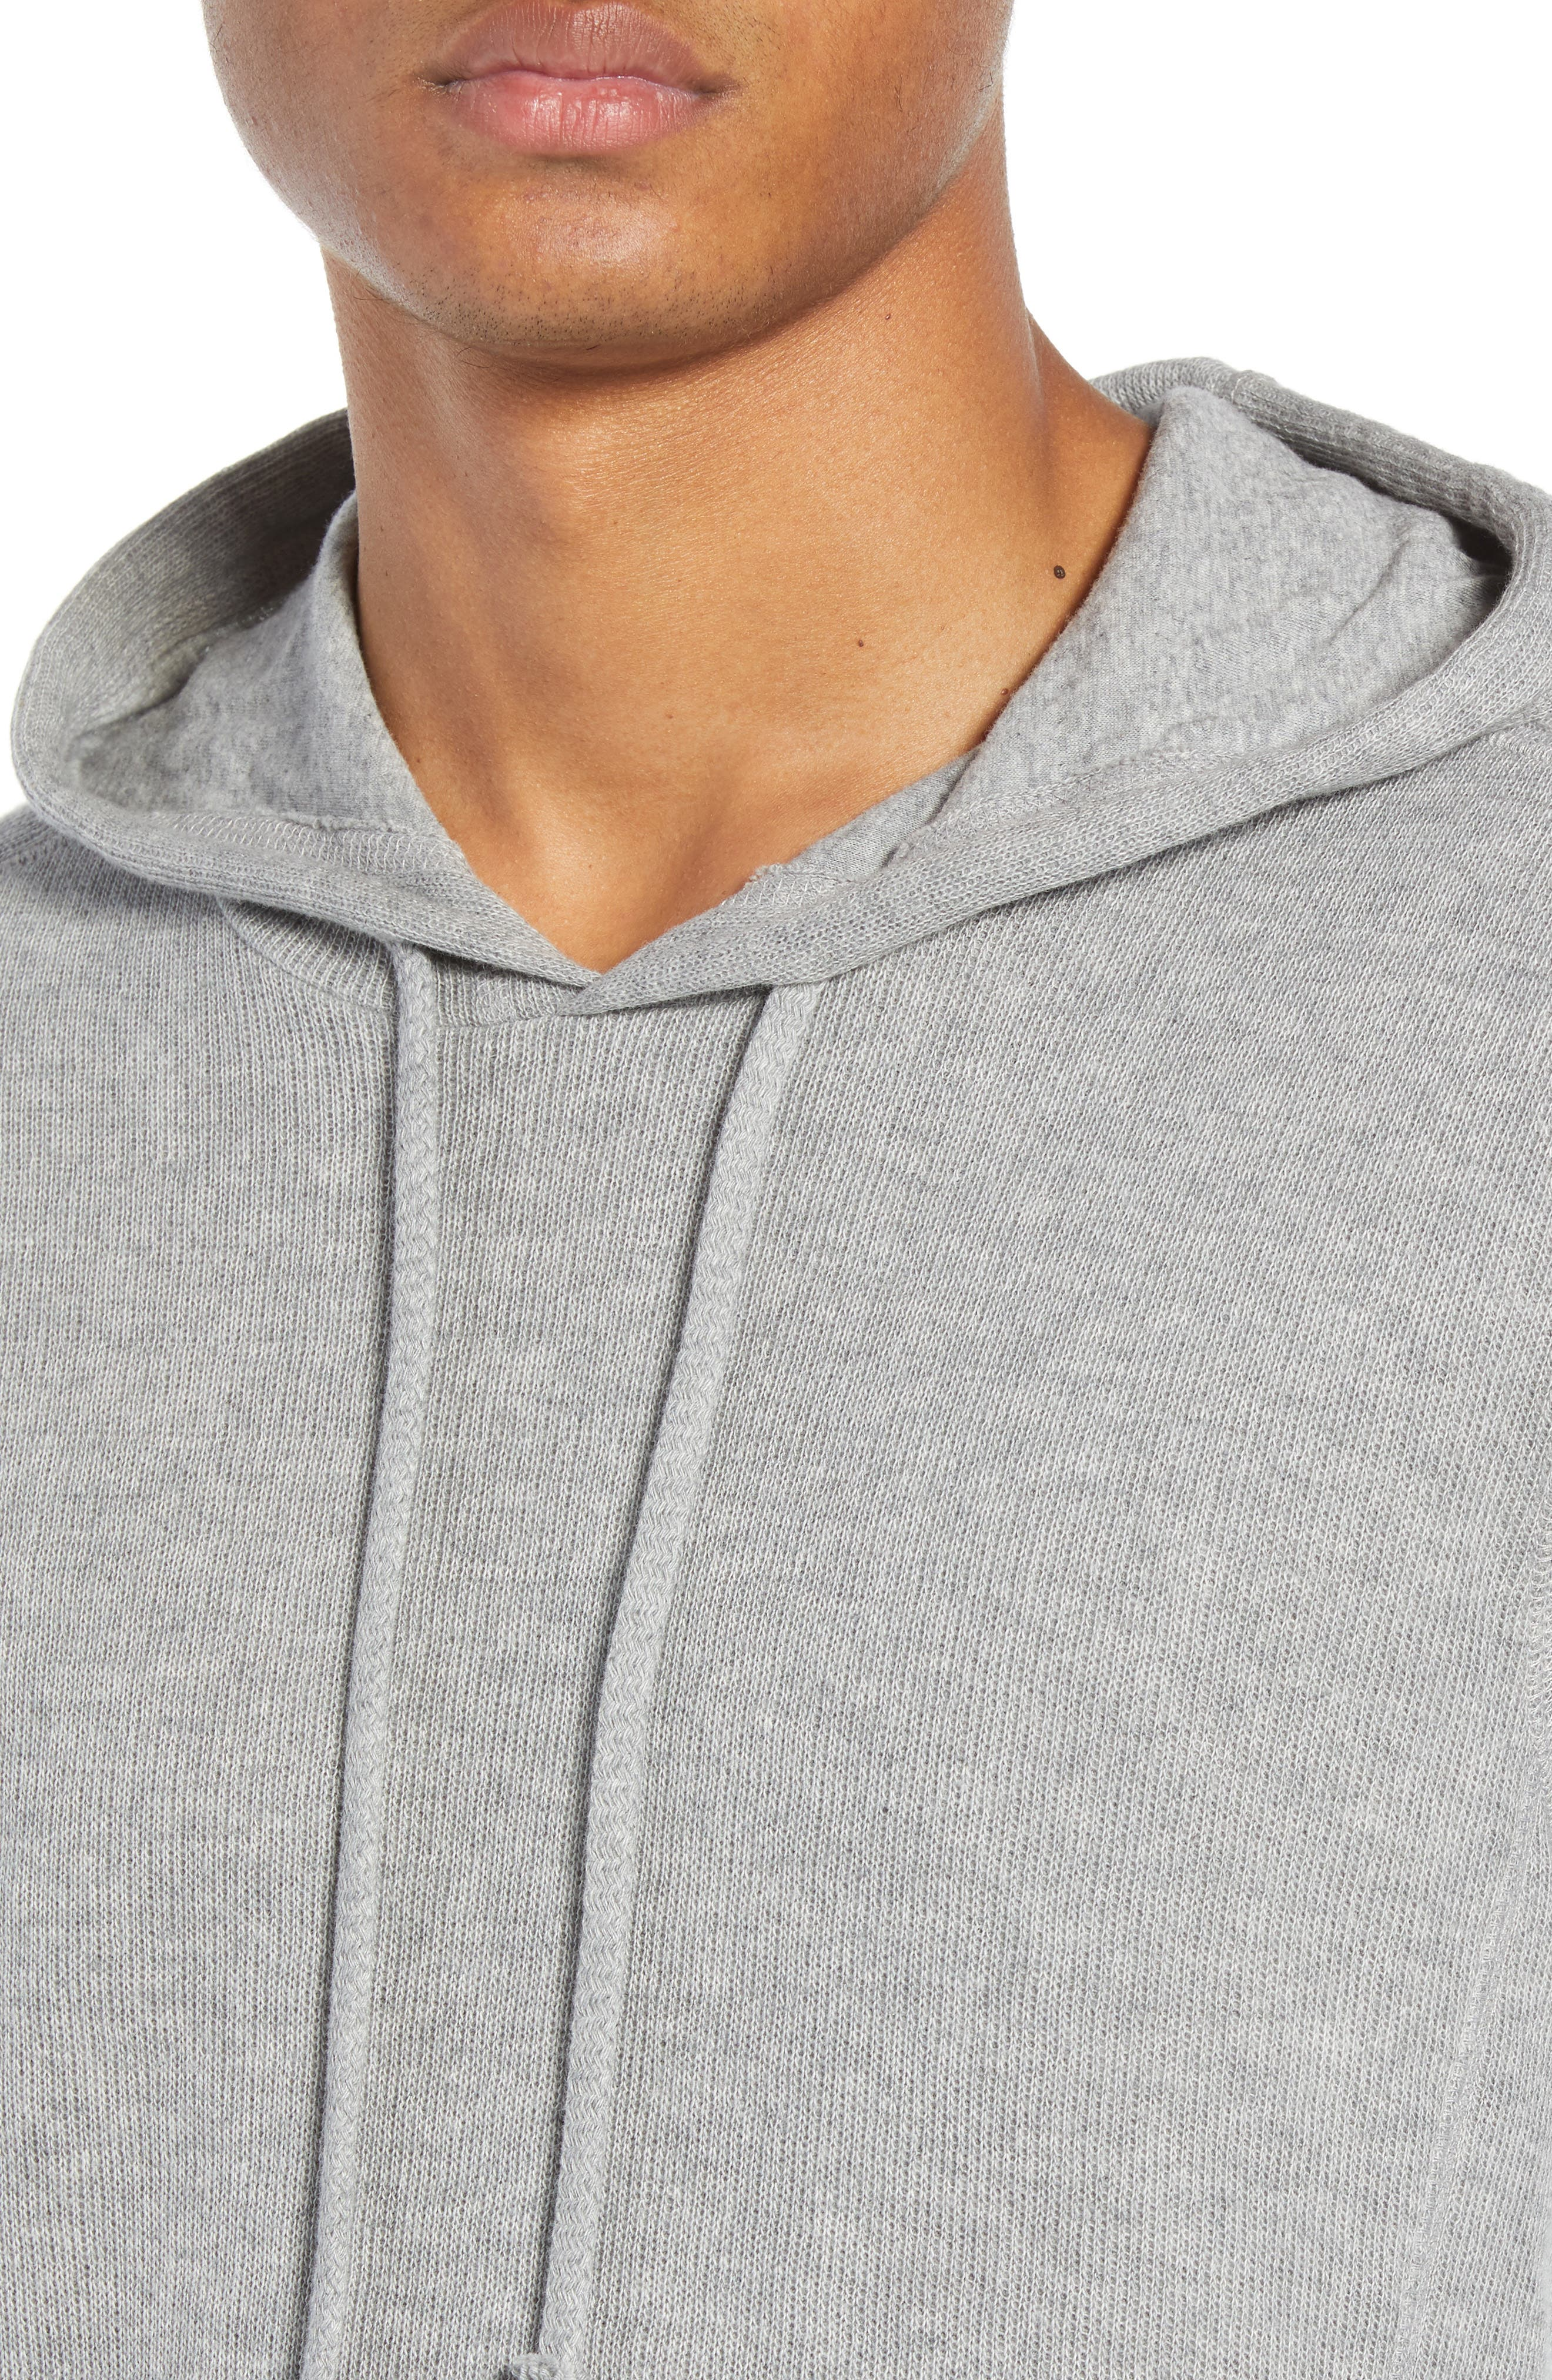 Double Knit Hoodie,                             Alternate thumbnail 4, color,                             H STEEL